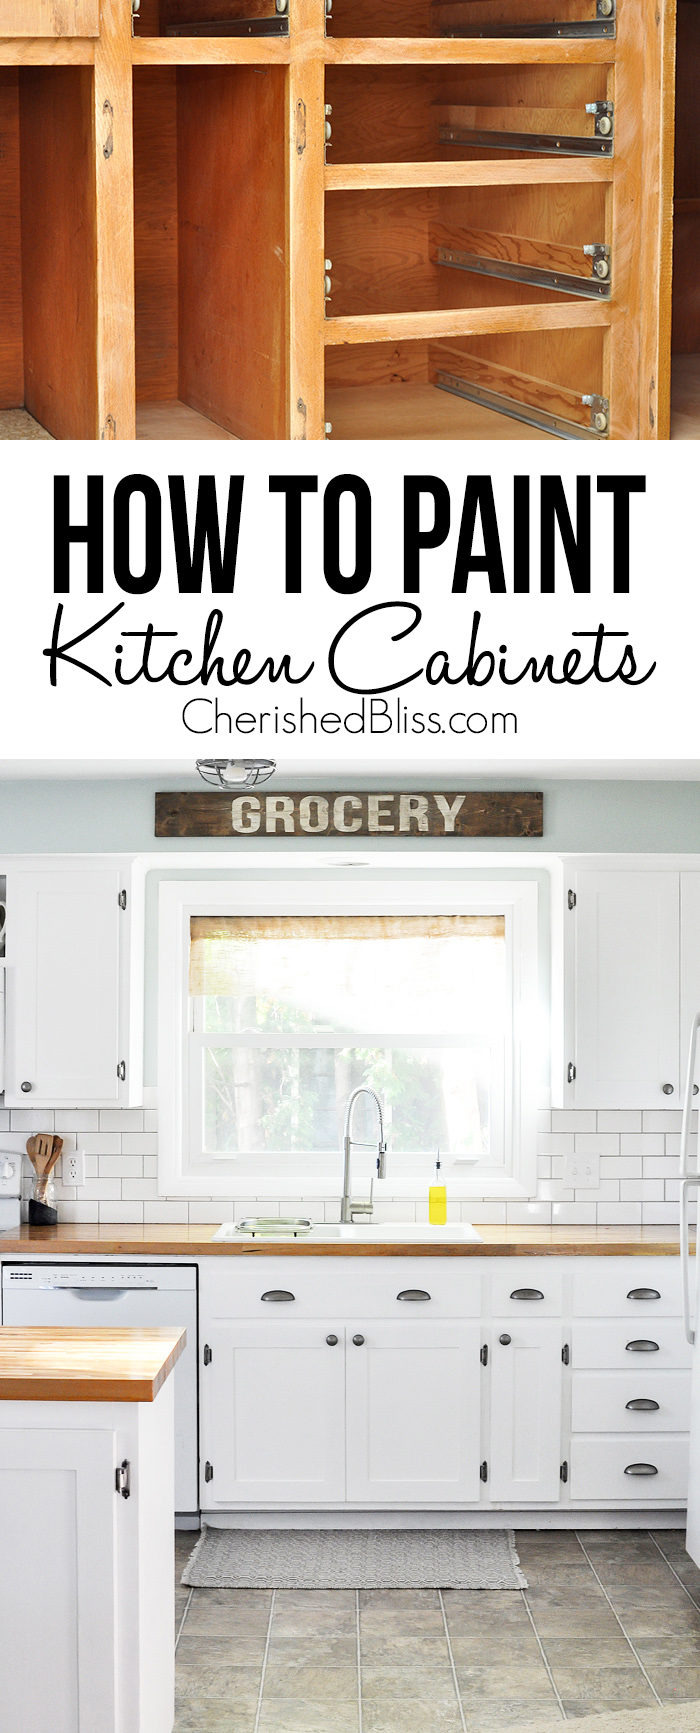 How to Paint Kitchen Cabinets 700x1733